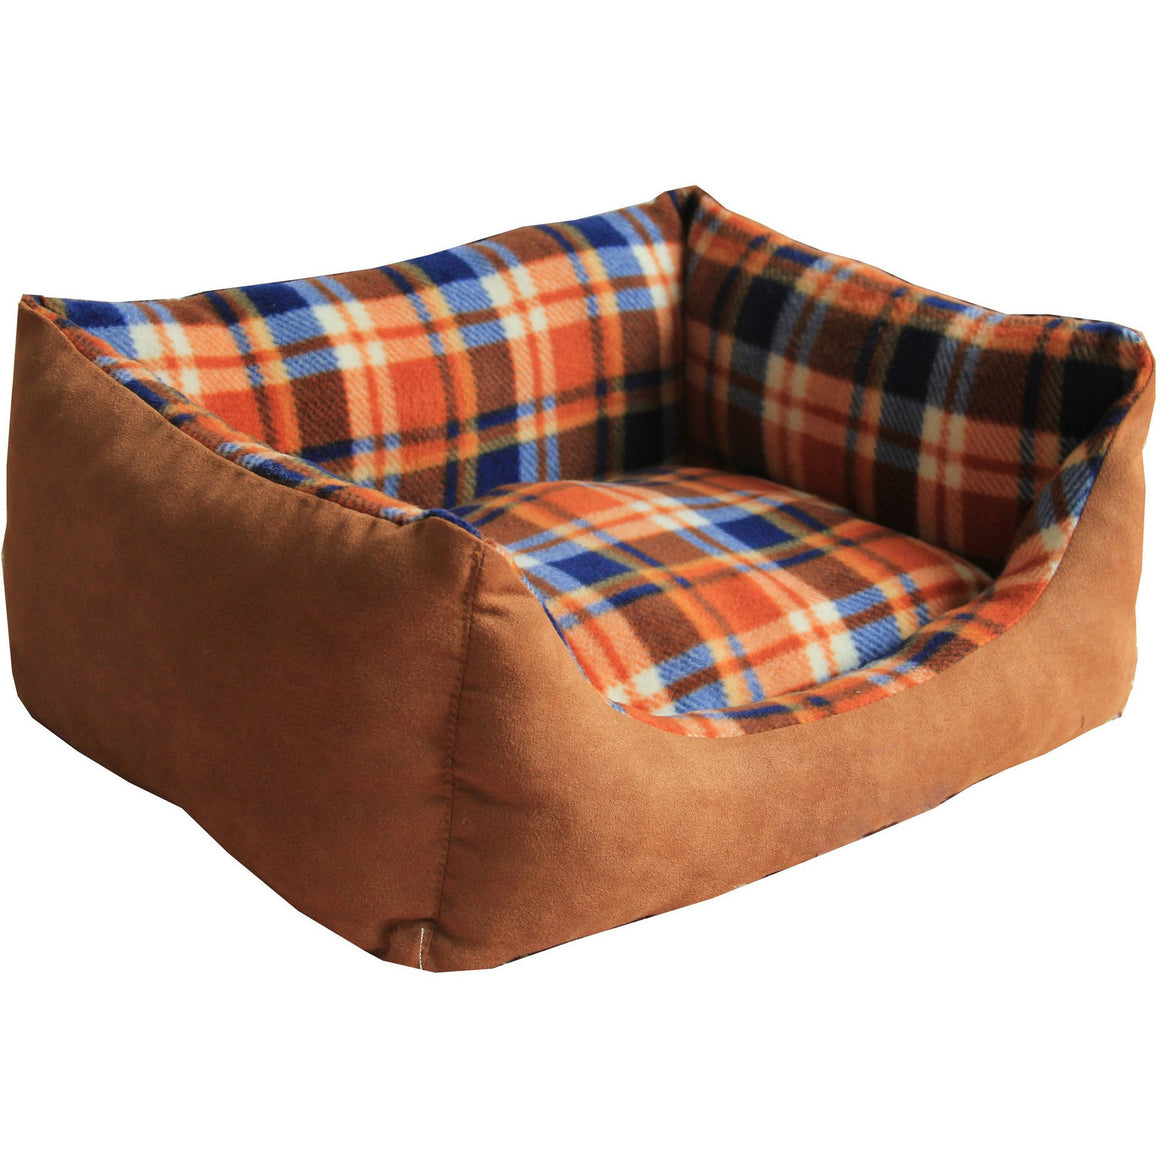 Anti-Bacterial/Water Resistant Rectangular Dog Bed - X-Small - Burnt Brown Plaid